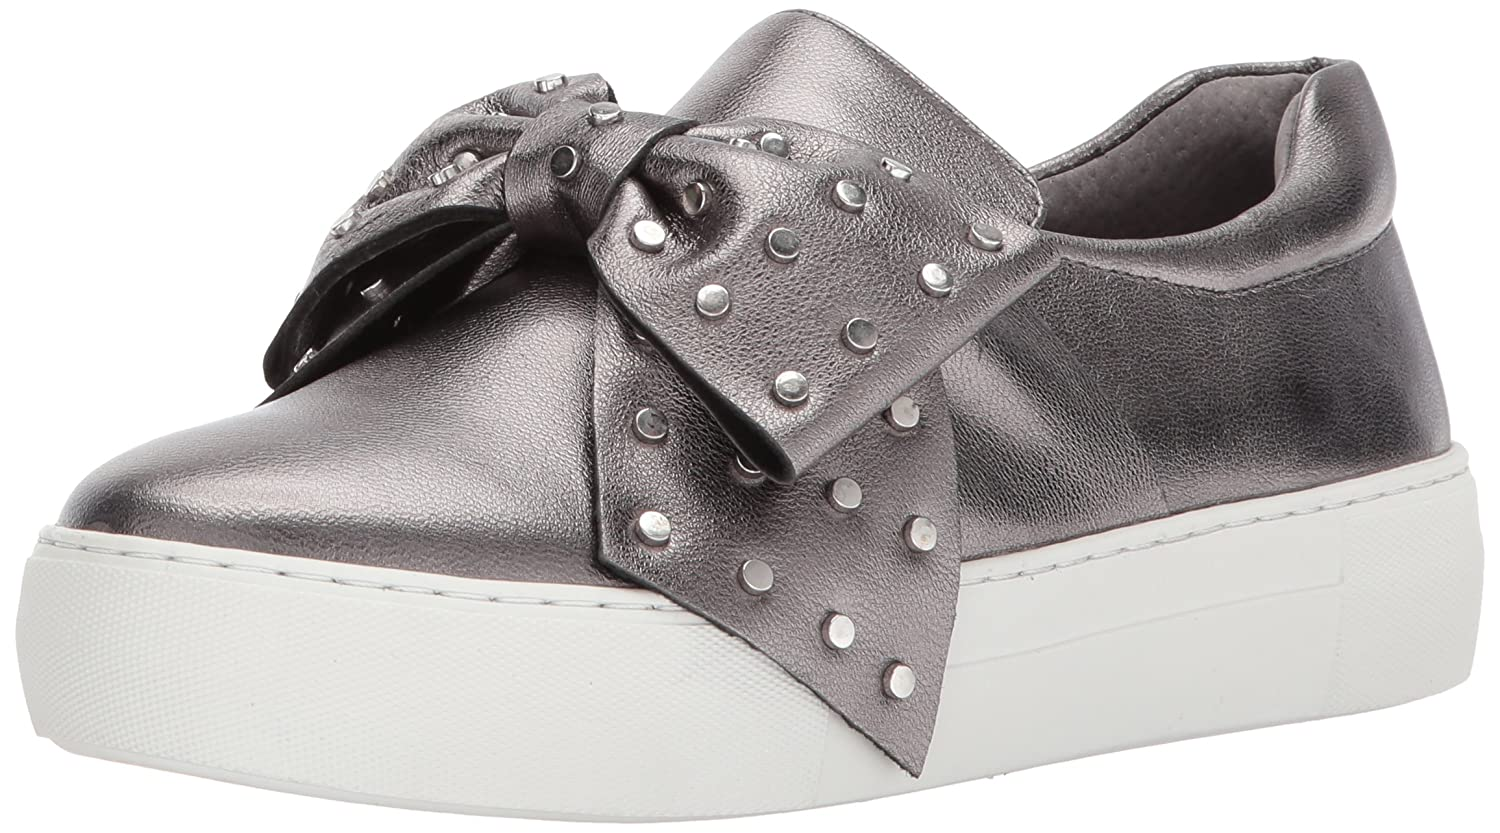 J Slides Women's Alive Fashion Sneaker B072M5FH2G 10 B(M) US|Pewter